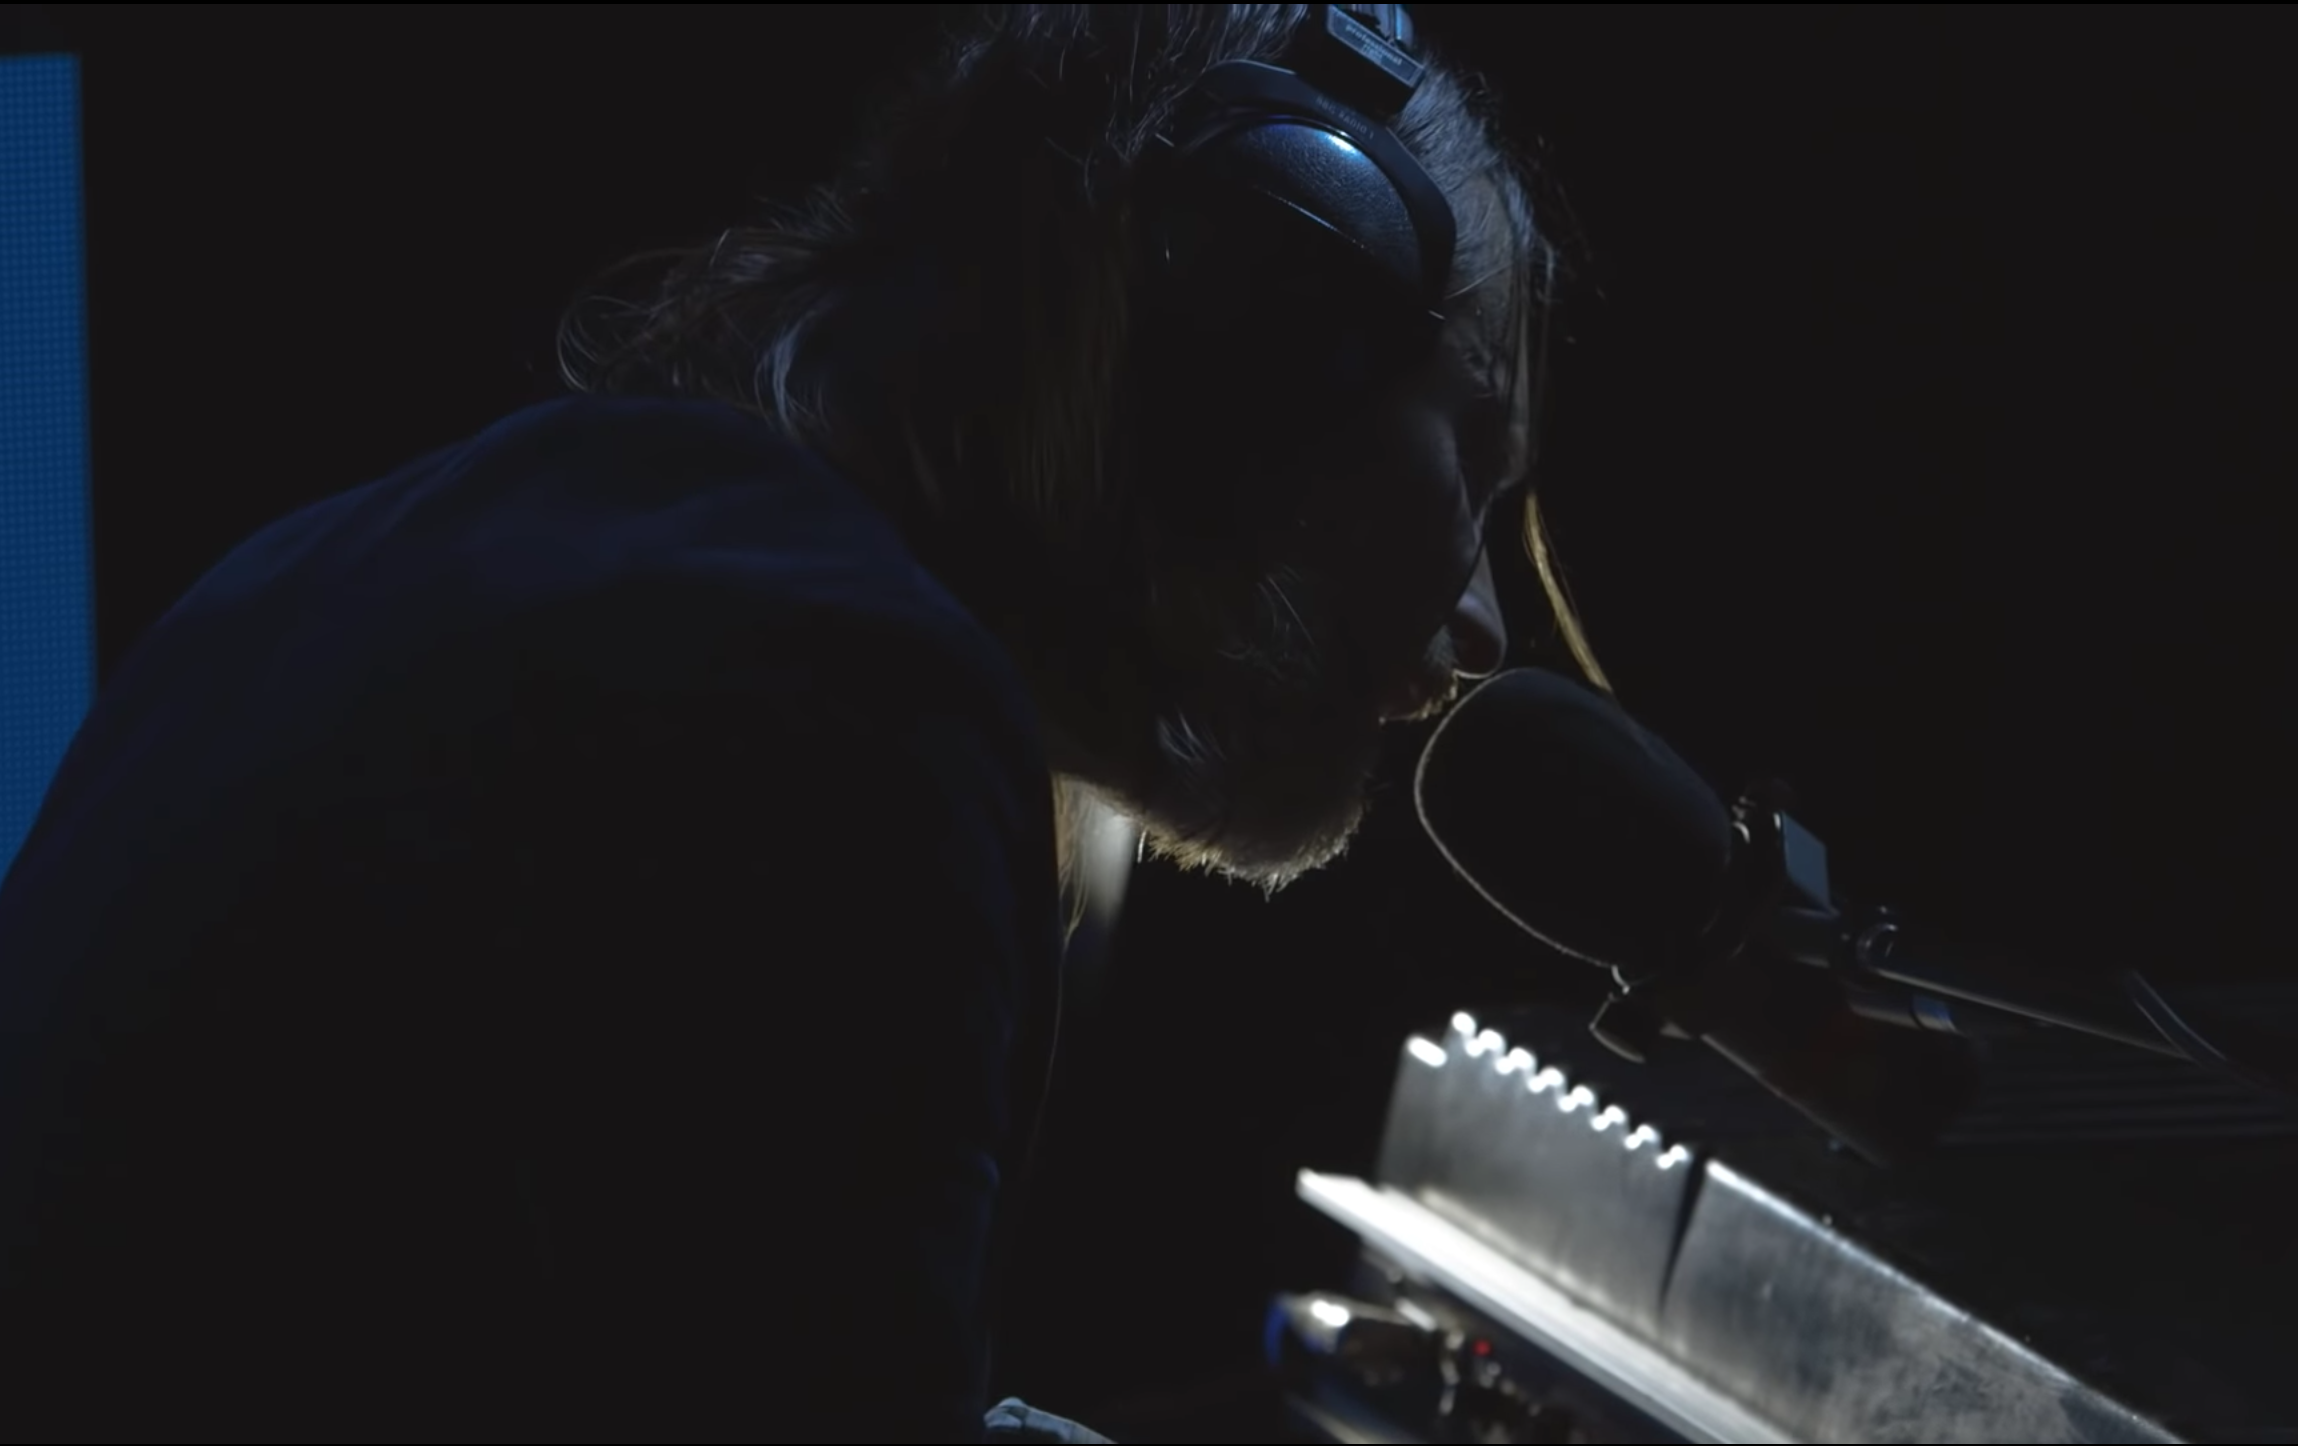 Thom Yorke plays 'Everything In Its Right Place' and 'Suspirium' for Radio 1's Piano Sessions